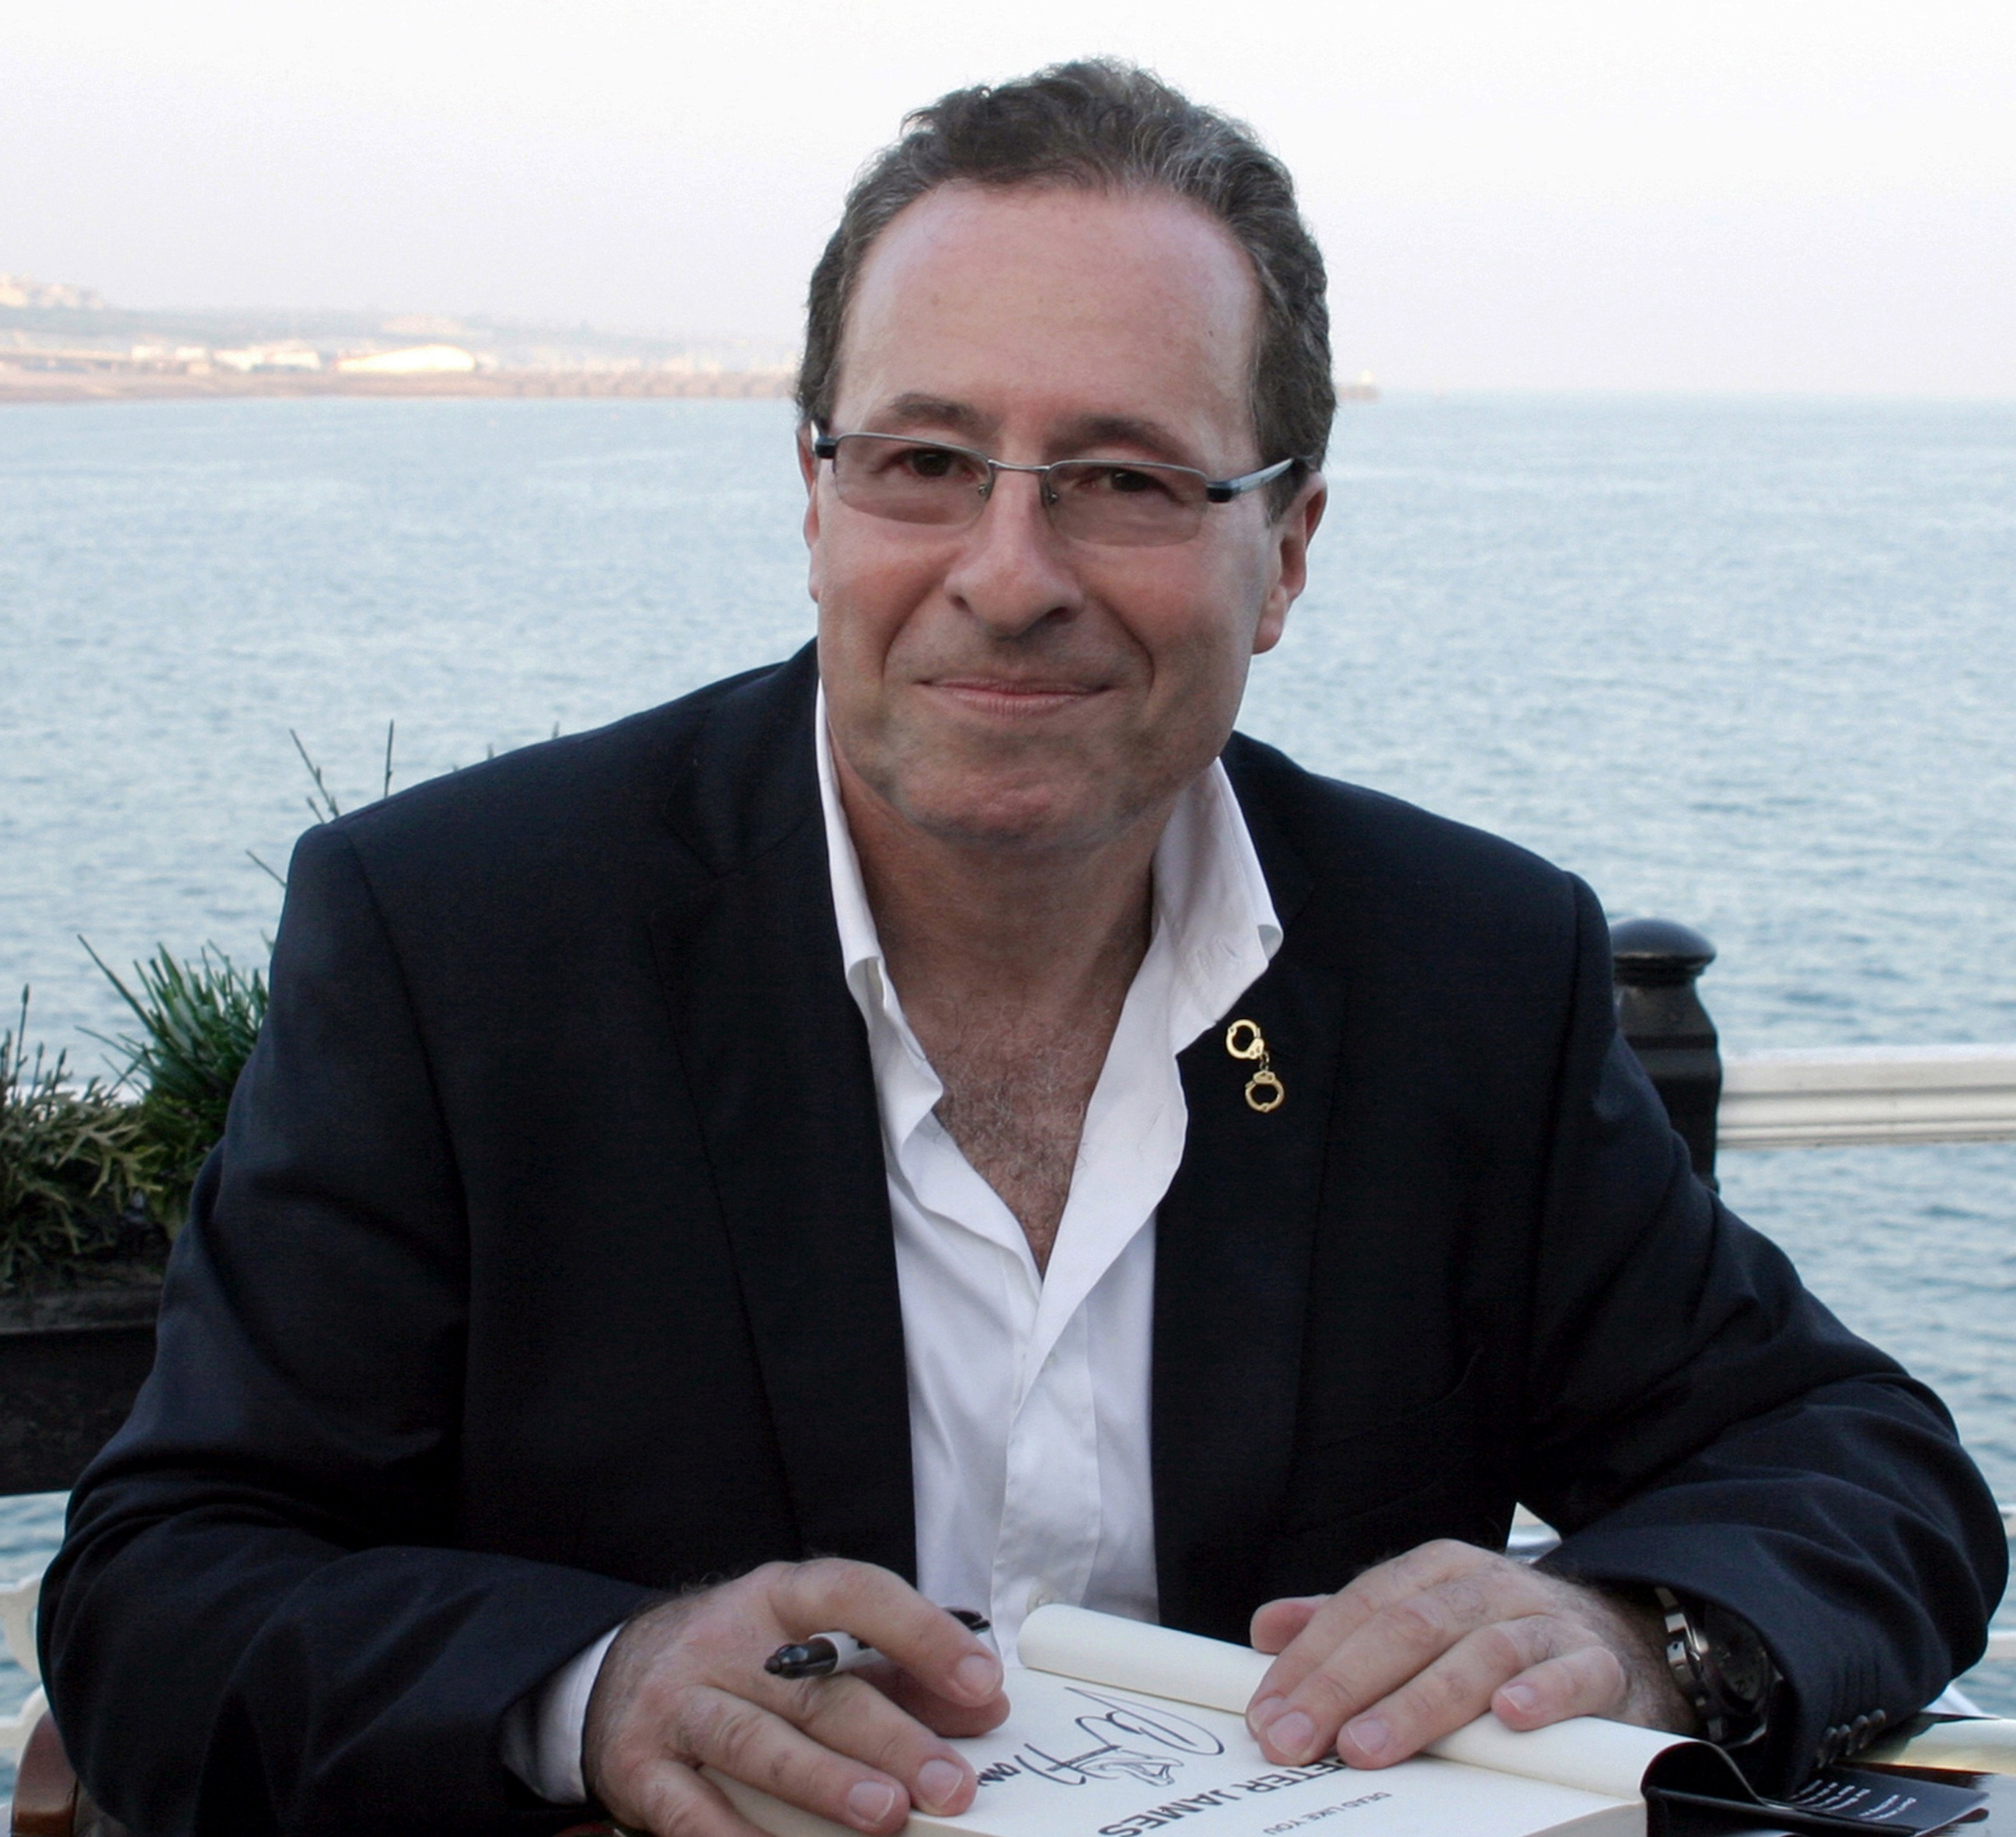 image of crime author Peter James